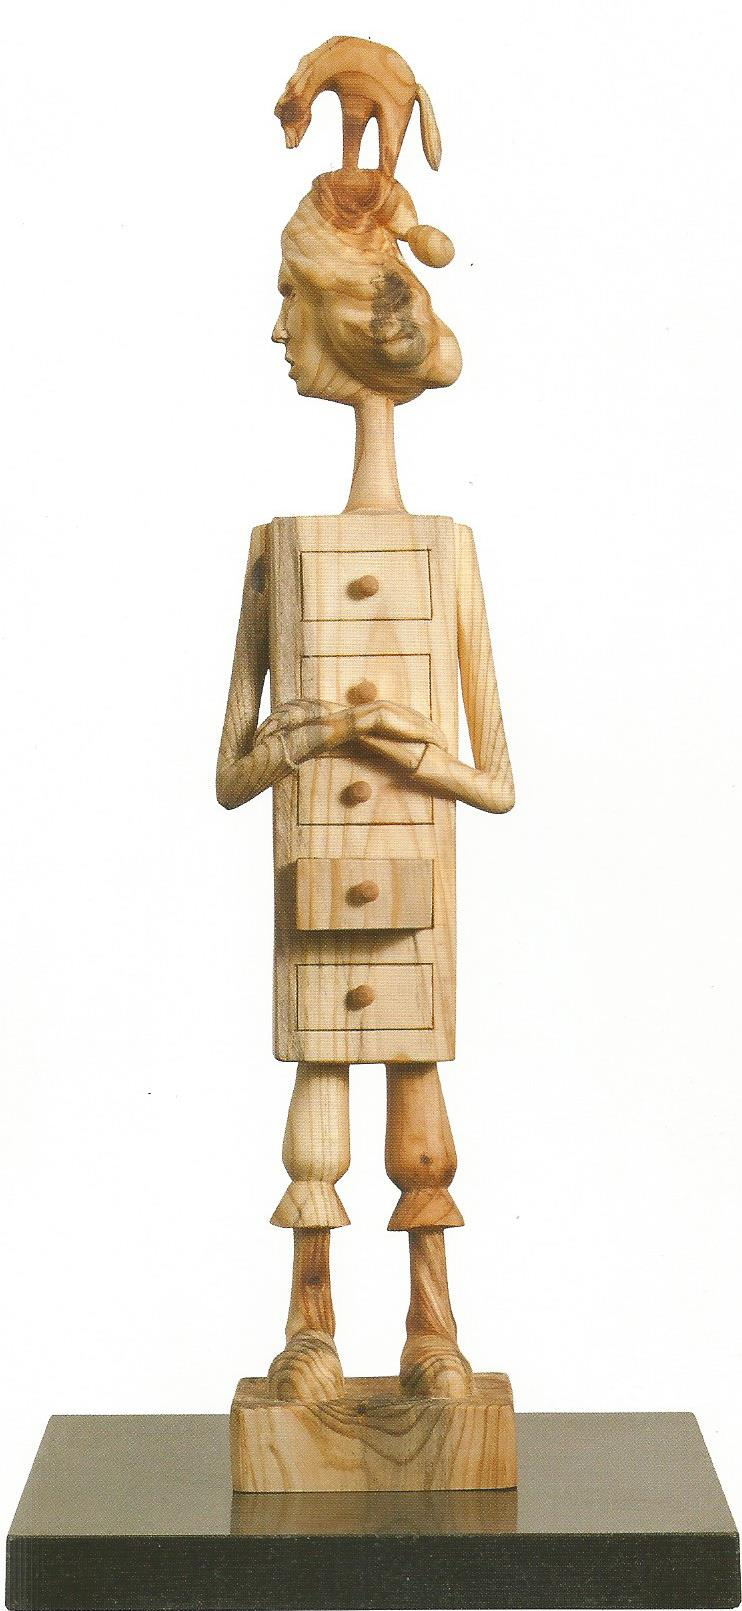 "Memories in the drawer #3.W4.5""L4.3""H24.4"".Wood.2011"